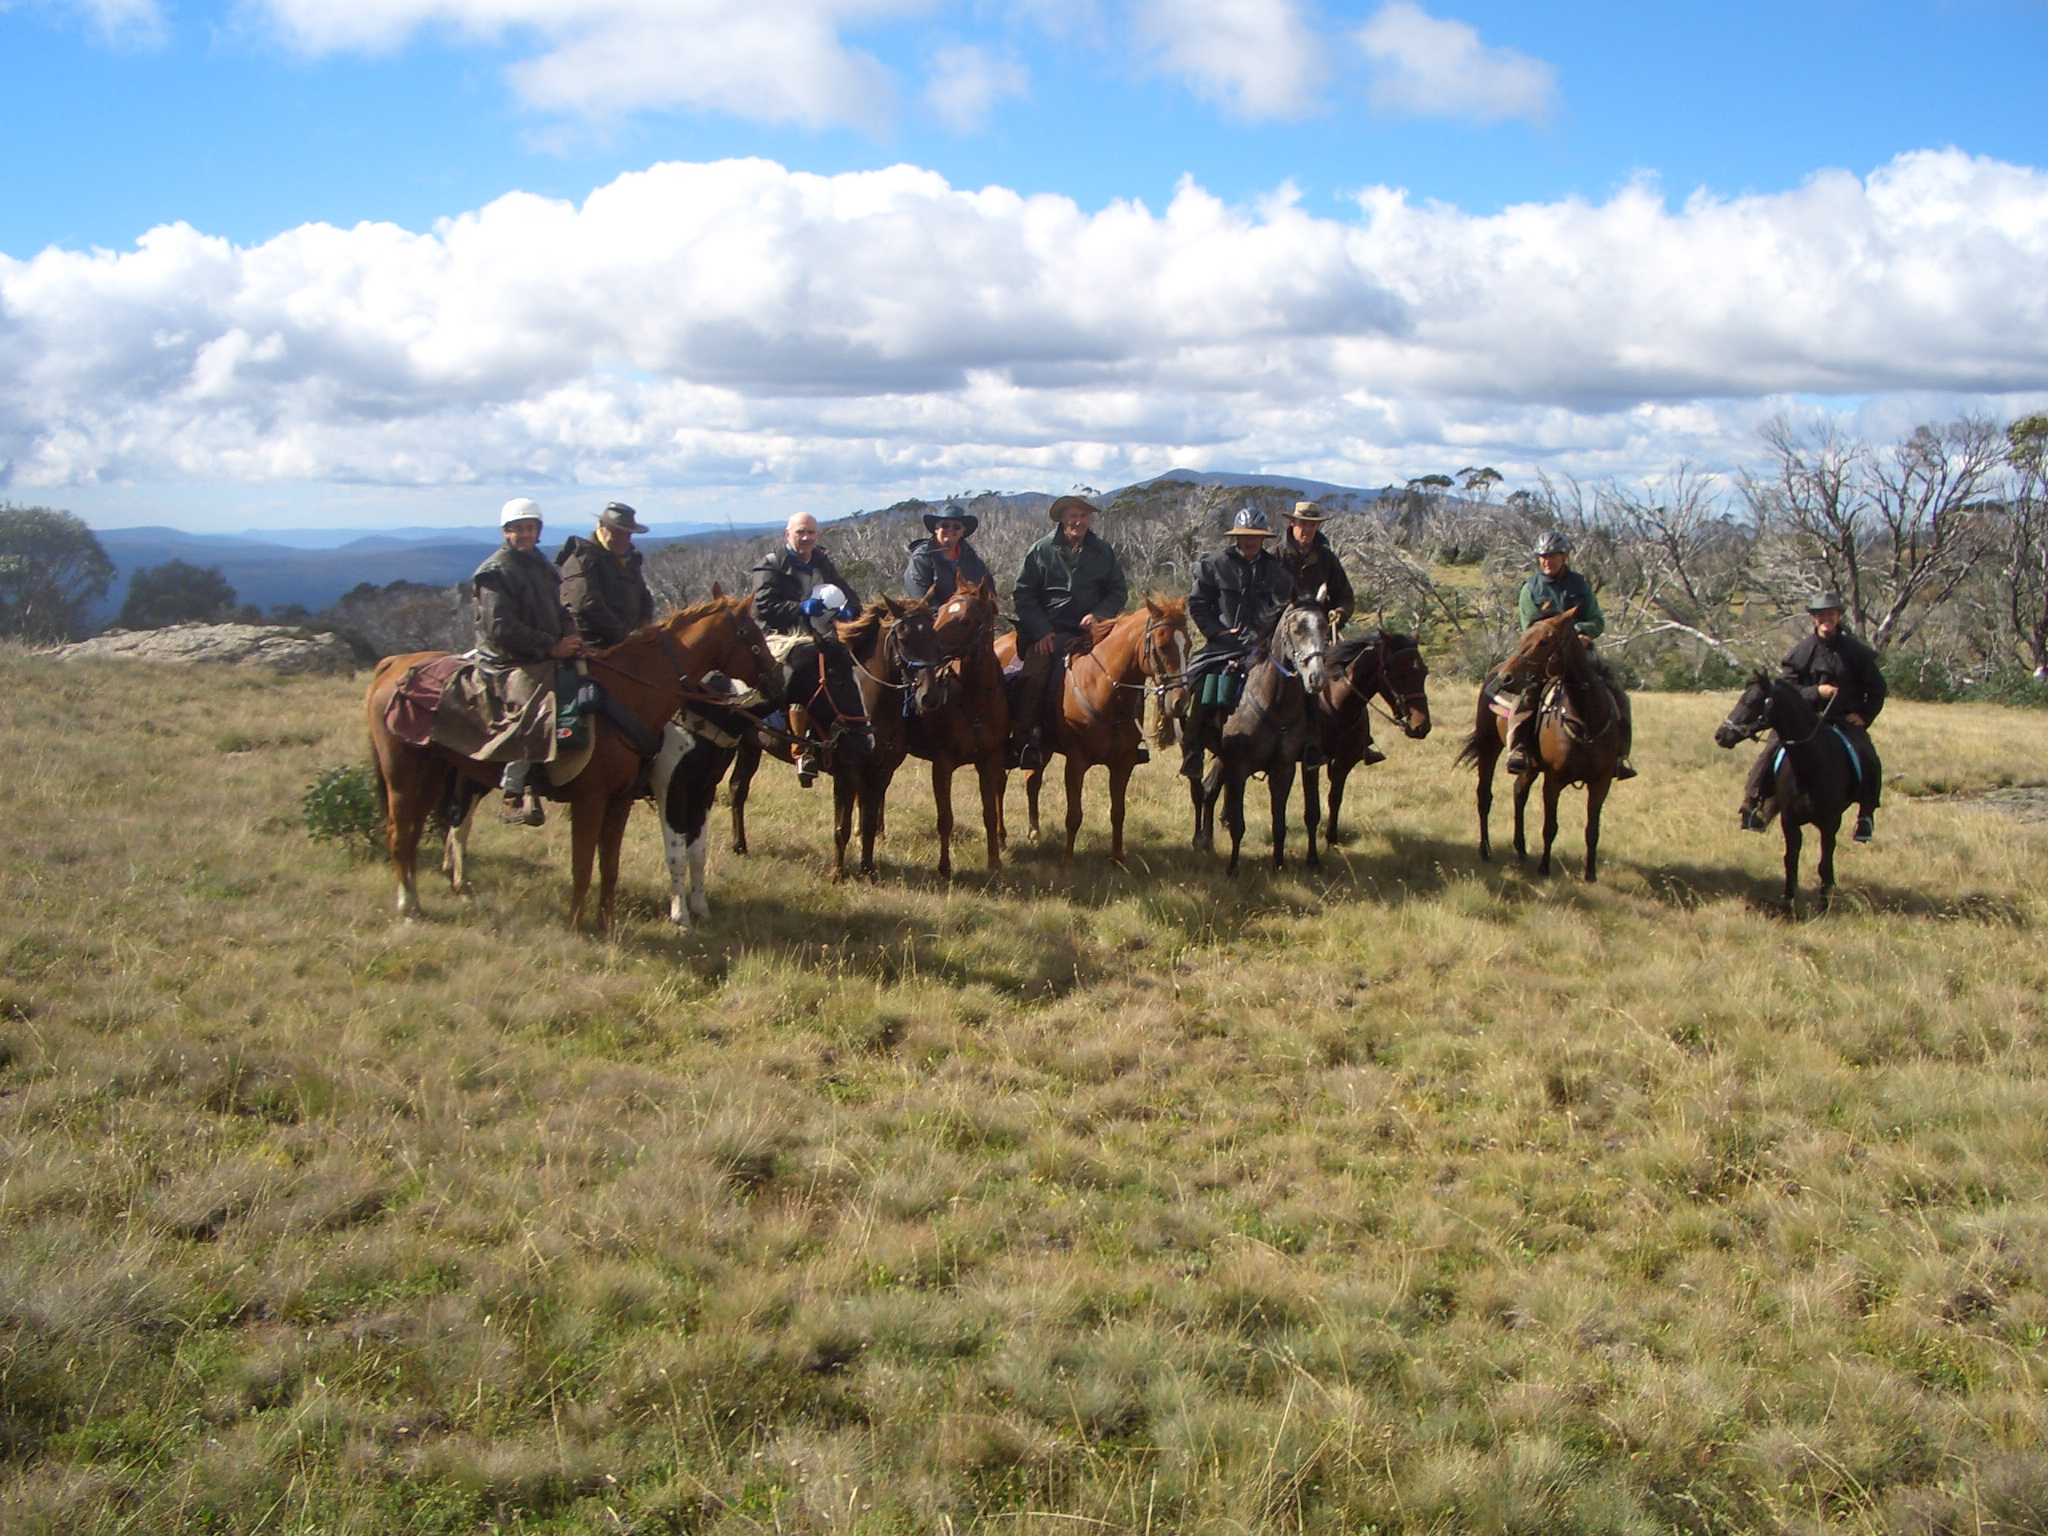 Riders enroute to Davies Plain Hut